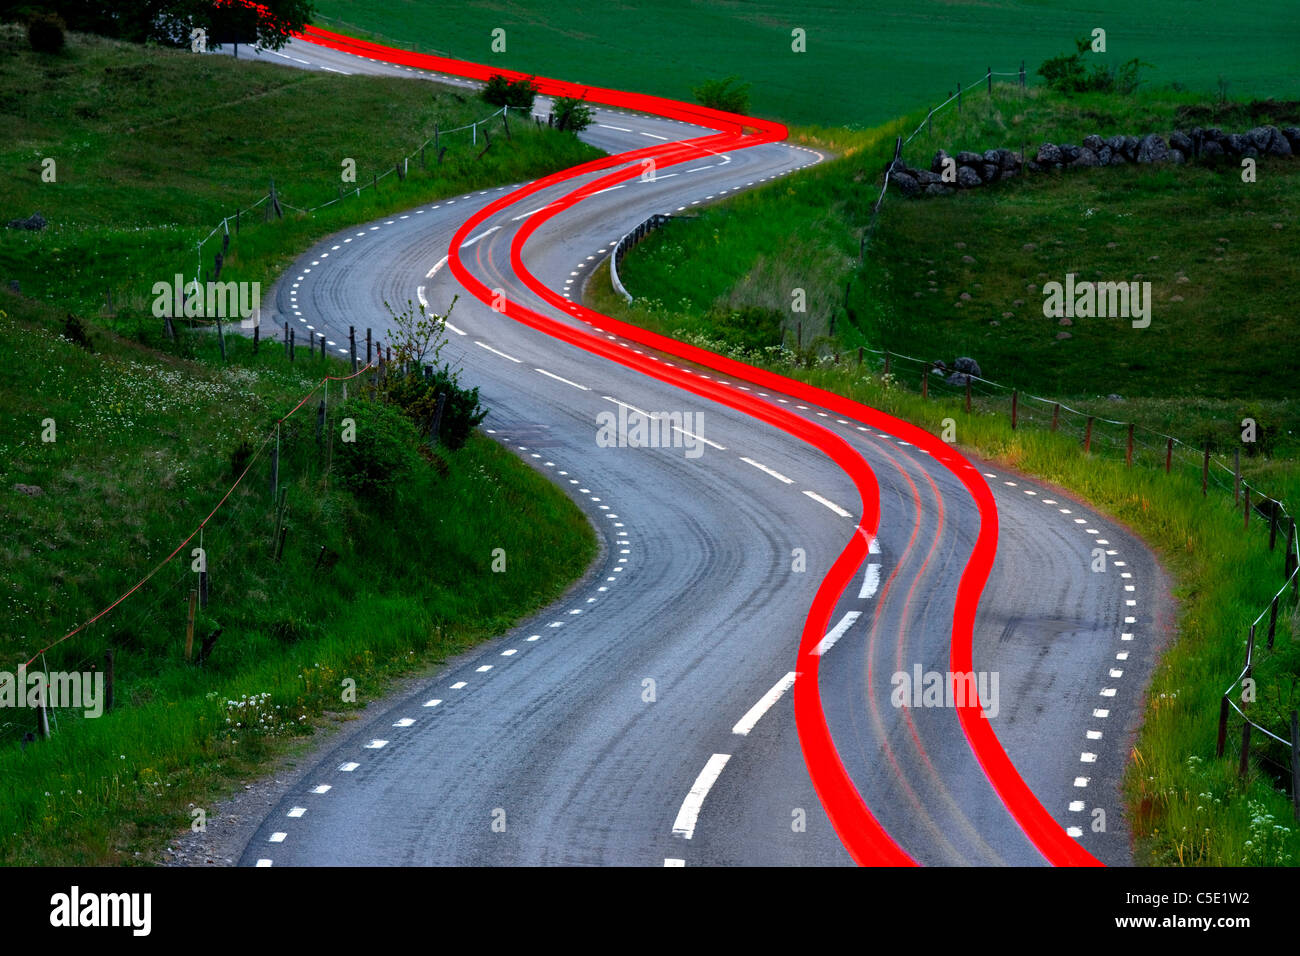 Red tail lights along the winding country road and fields - Stock Image